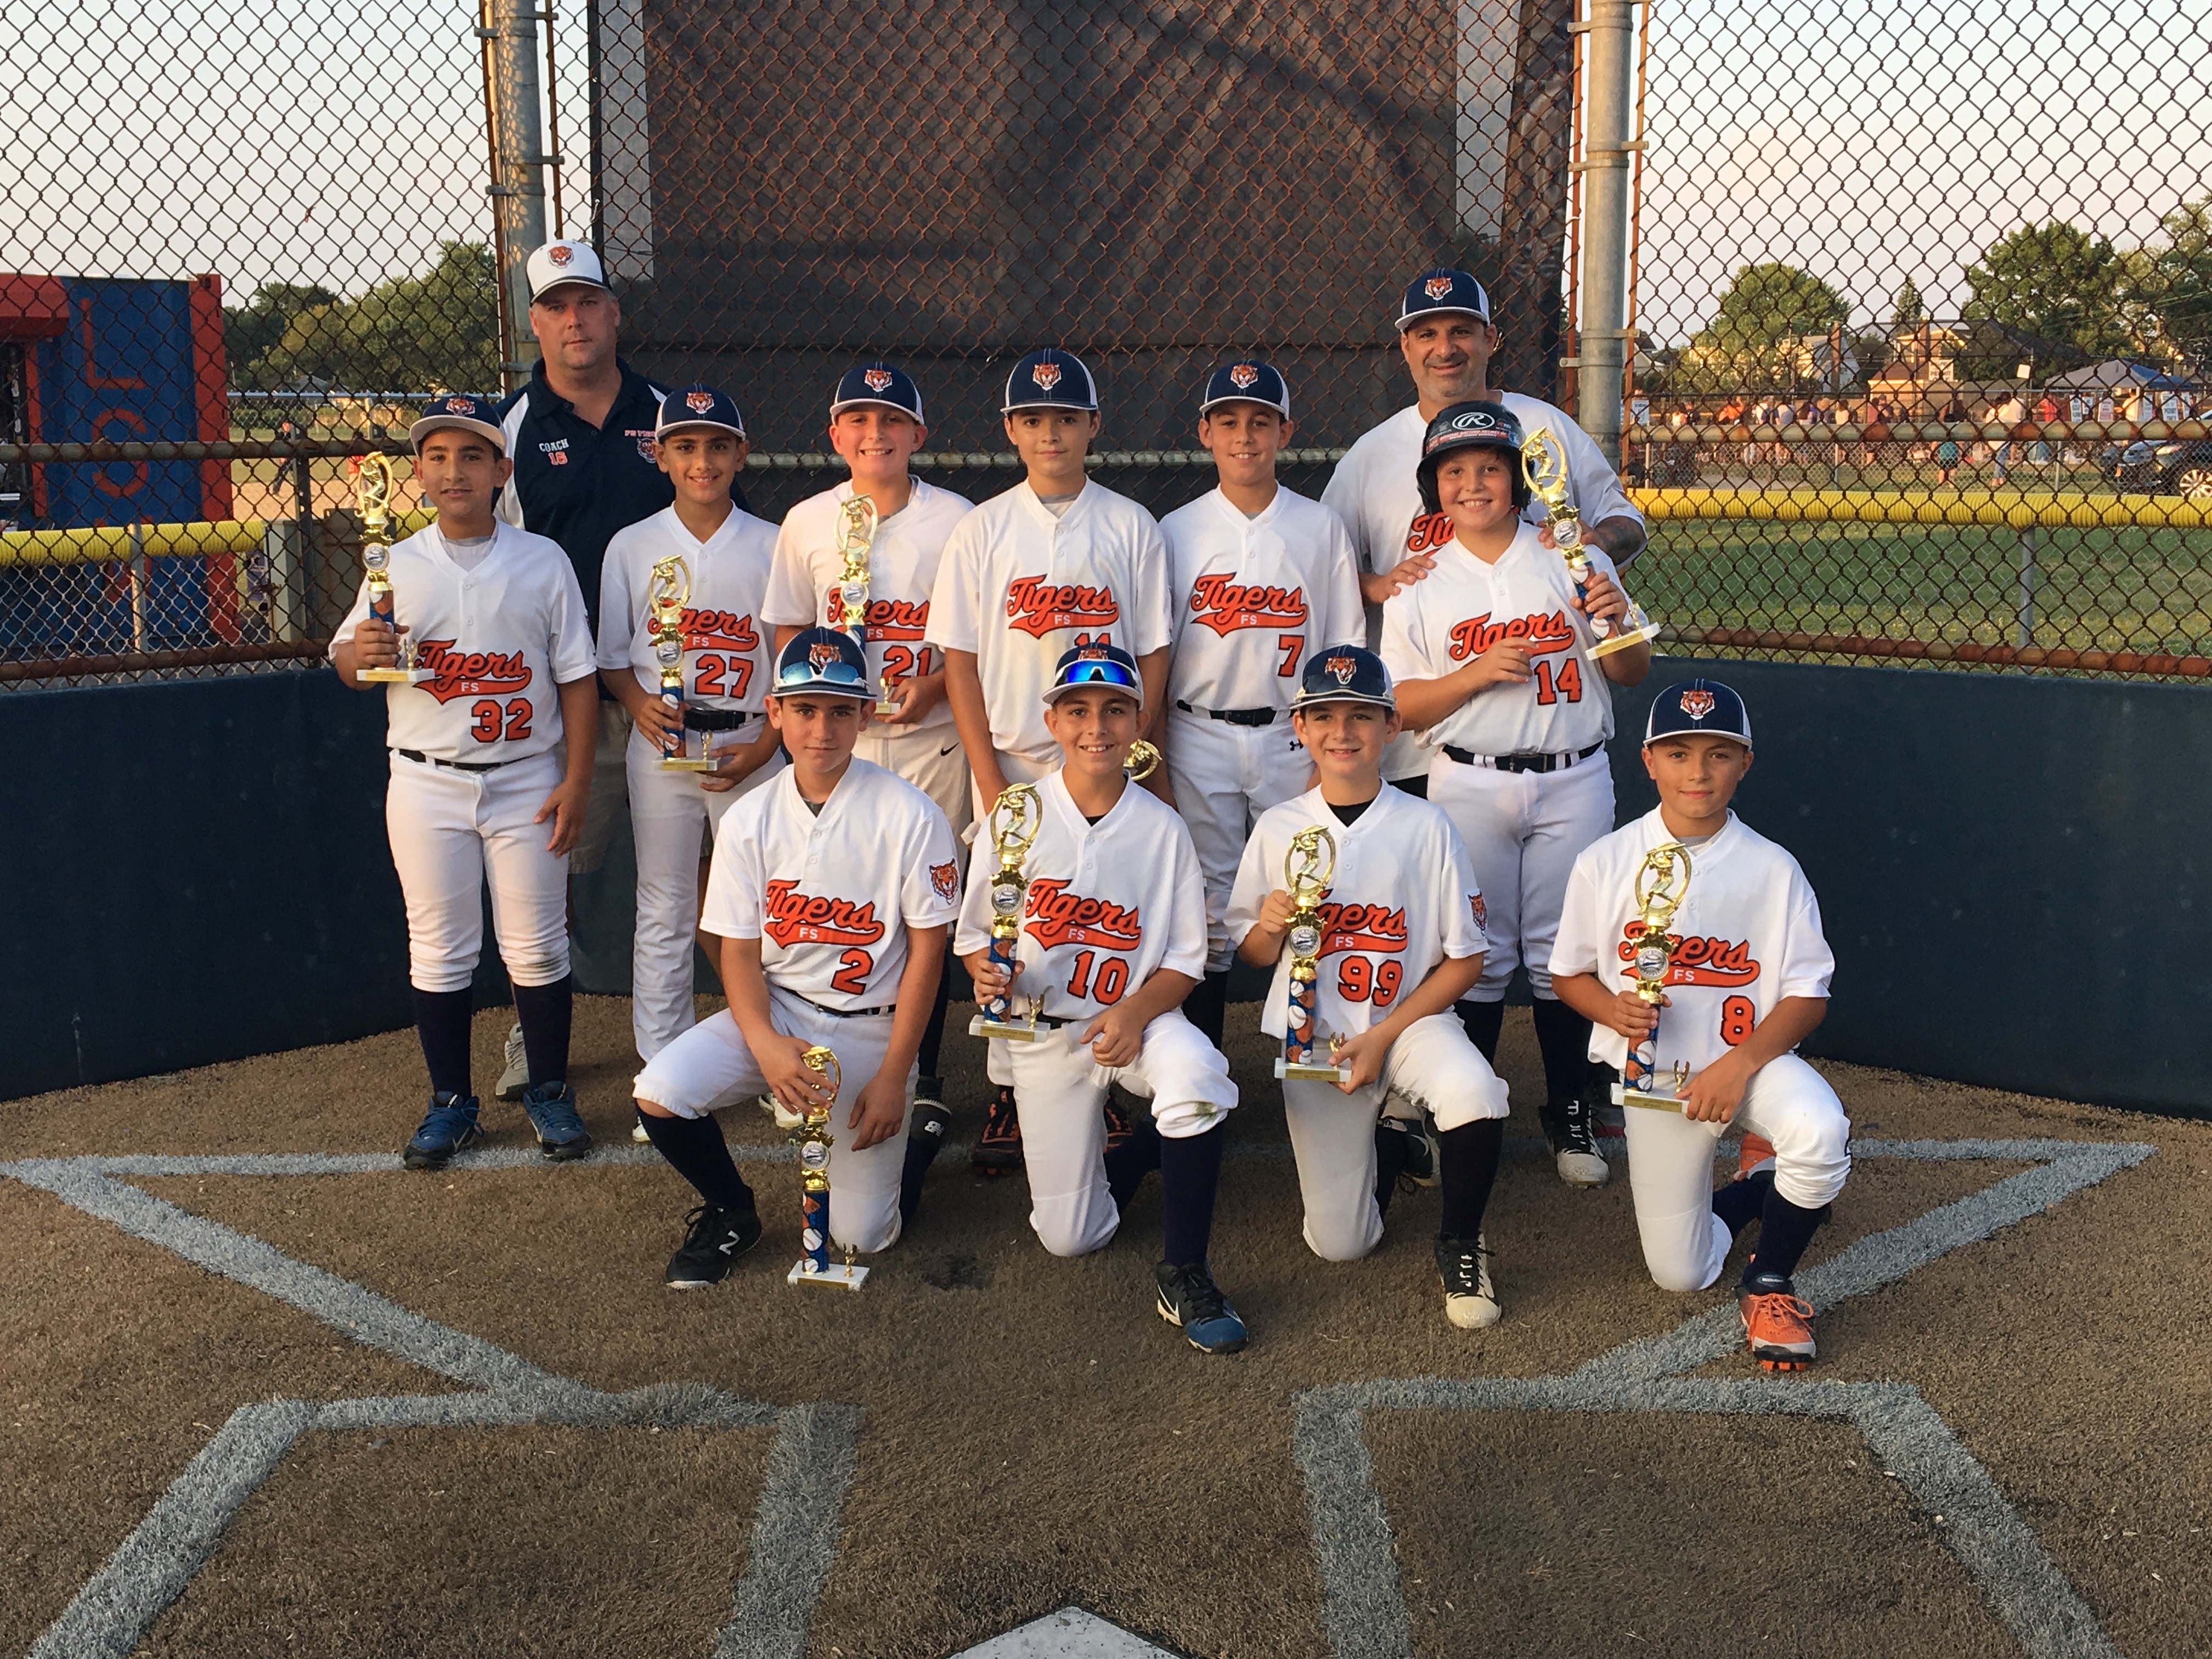 Hot Stove Summer League Champs- 11u National FS Tigers